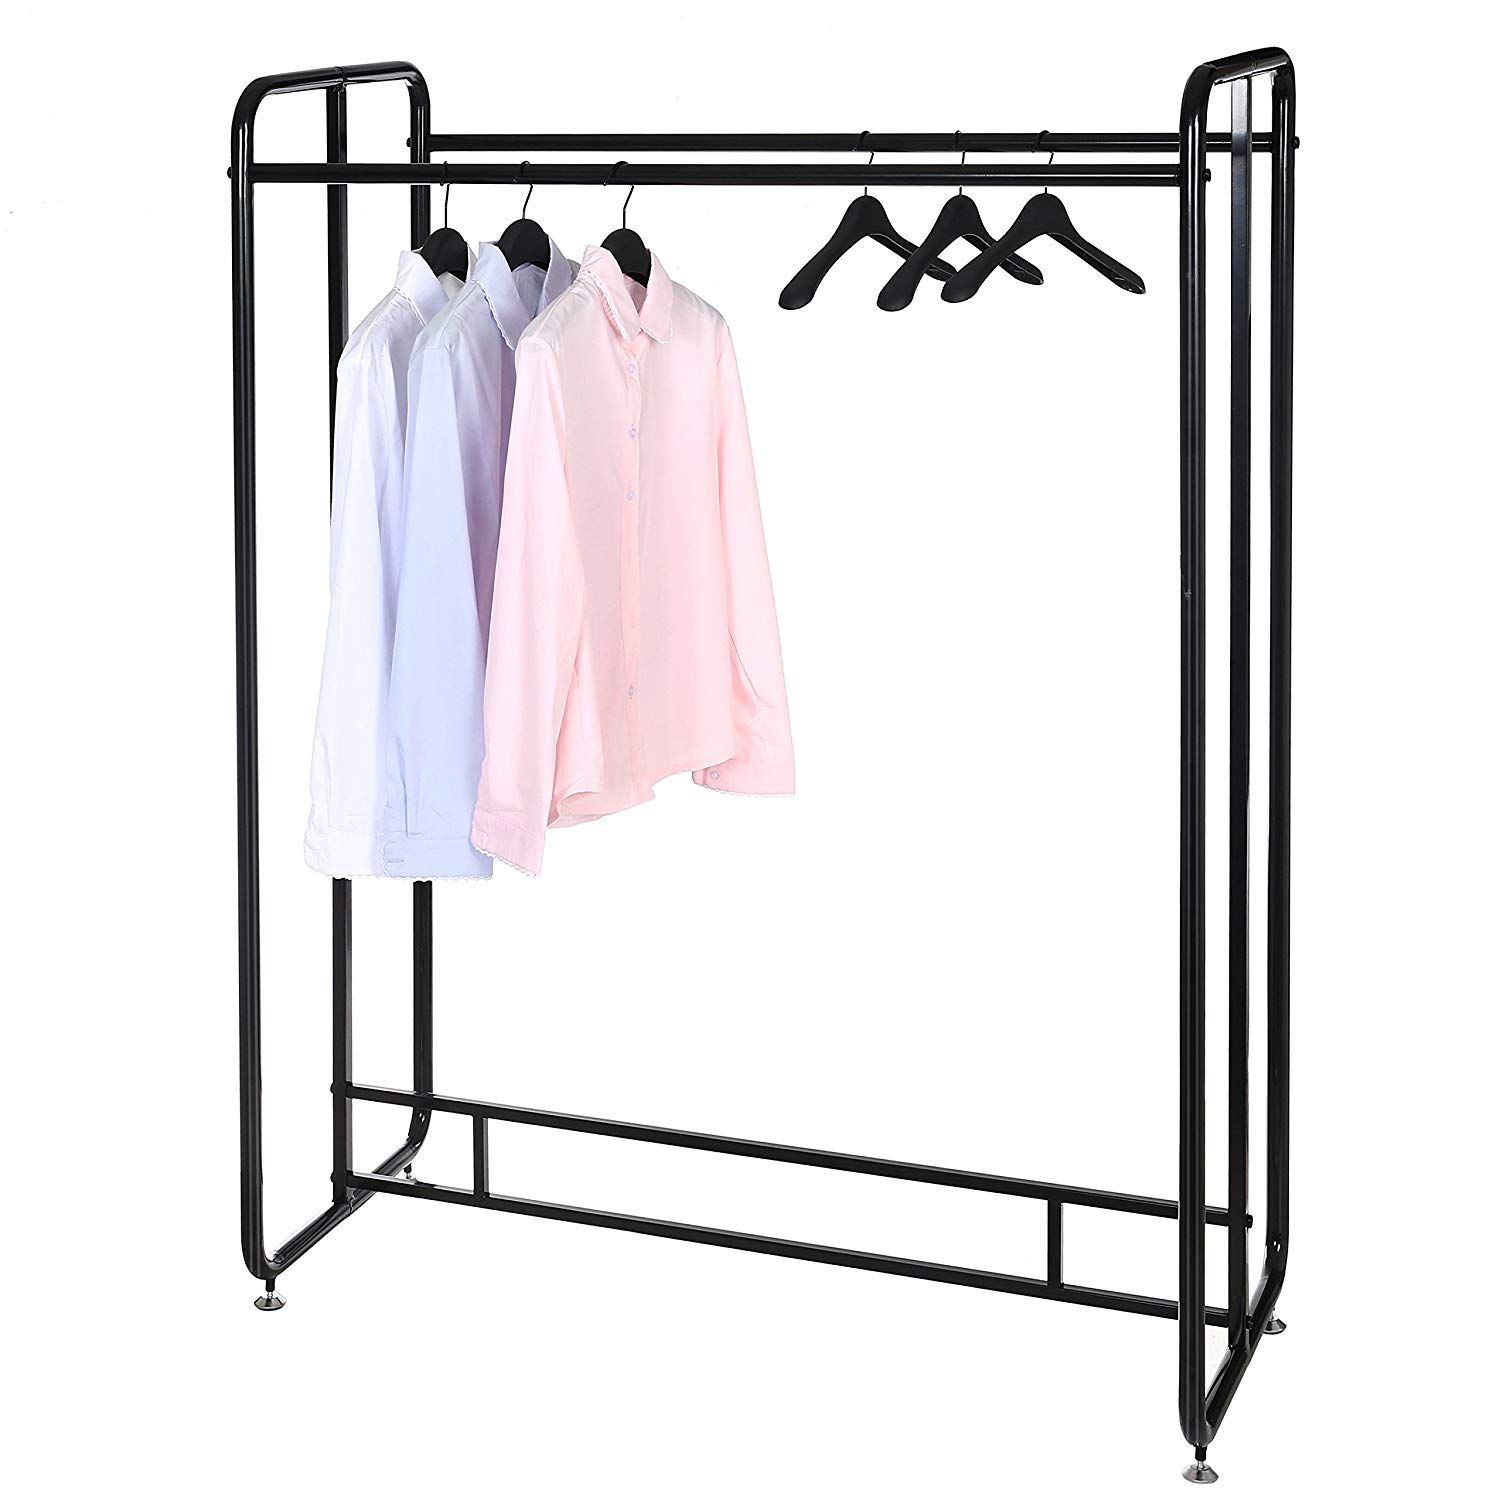 55-Inch Heavy Duty Black Metal Commercial Dual-Sided Garment Rack, Retail Clothing Display